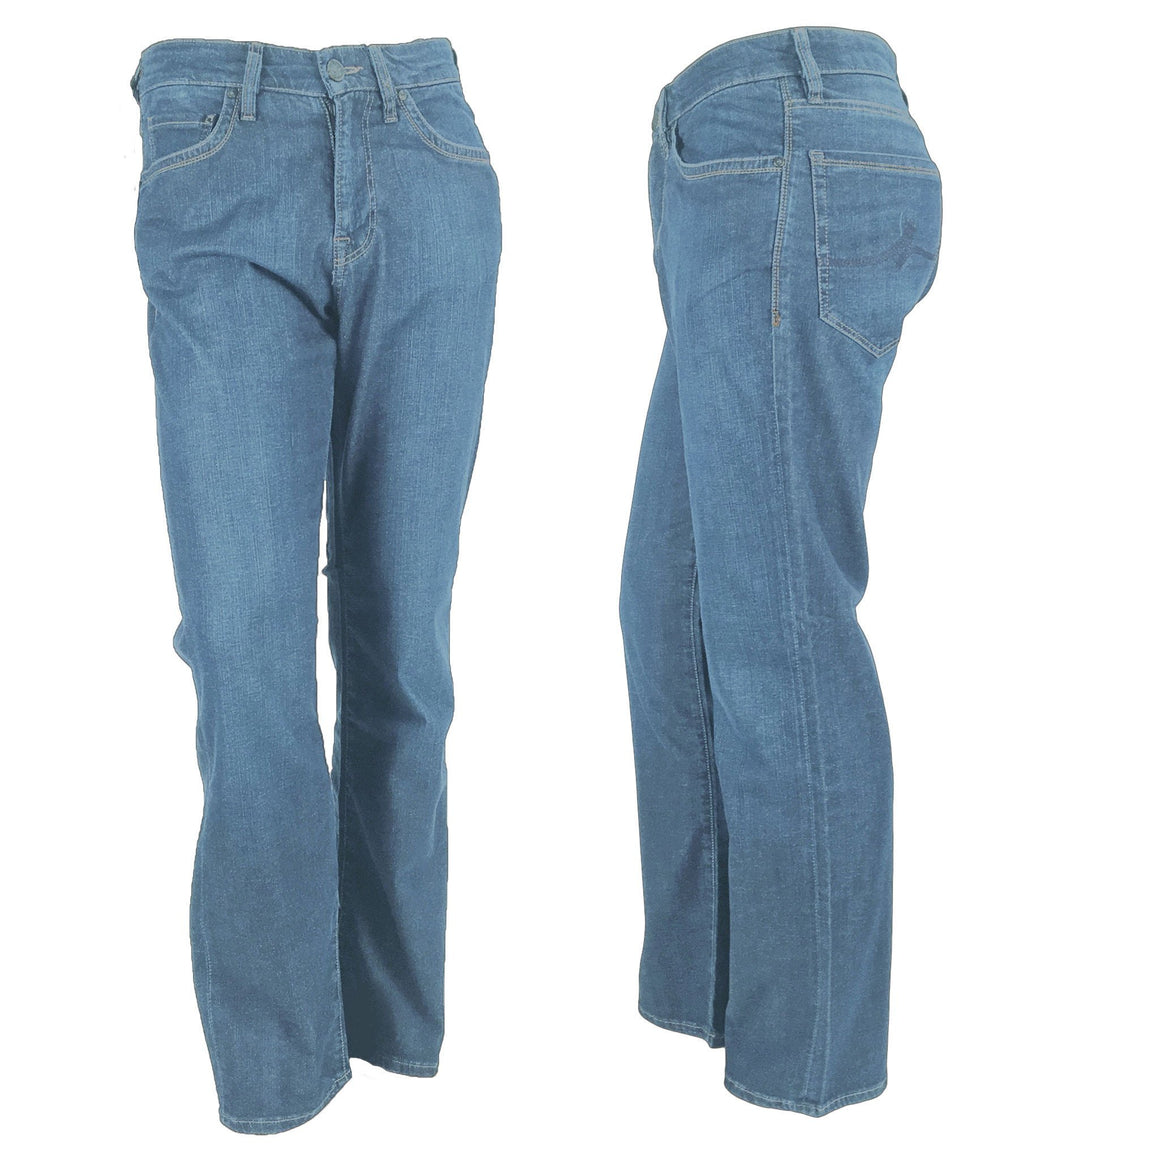 34 HERITAGE - CHARISMA -COMFORT JEAN - LIGHT REFINED - 001118-19581 - 539MAIN - 1